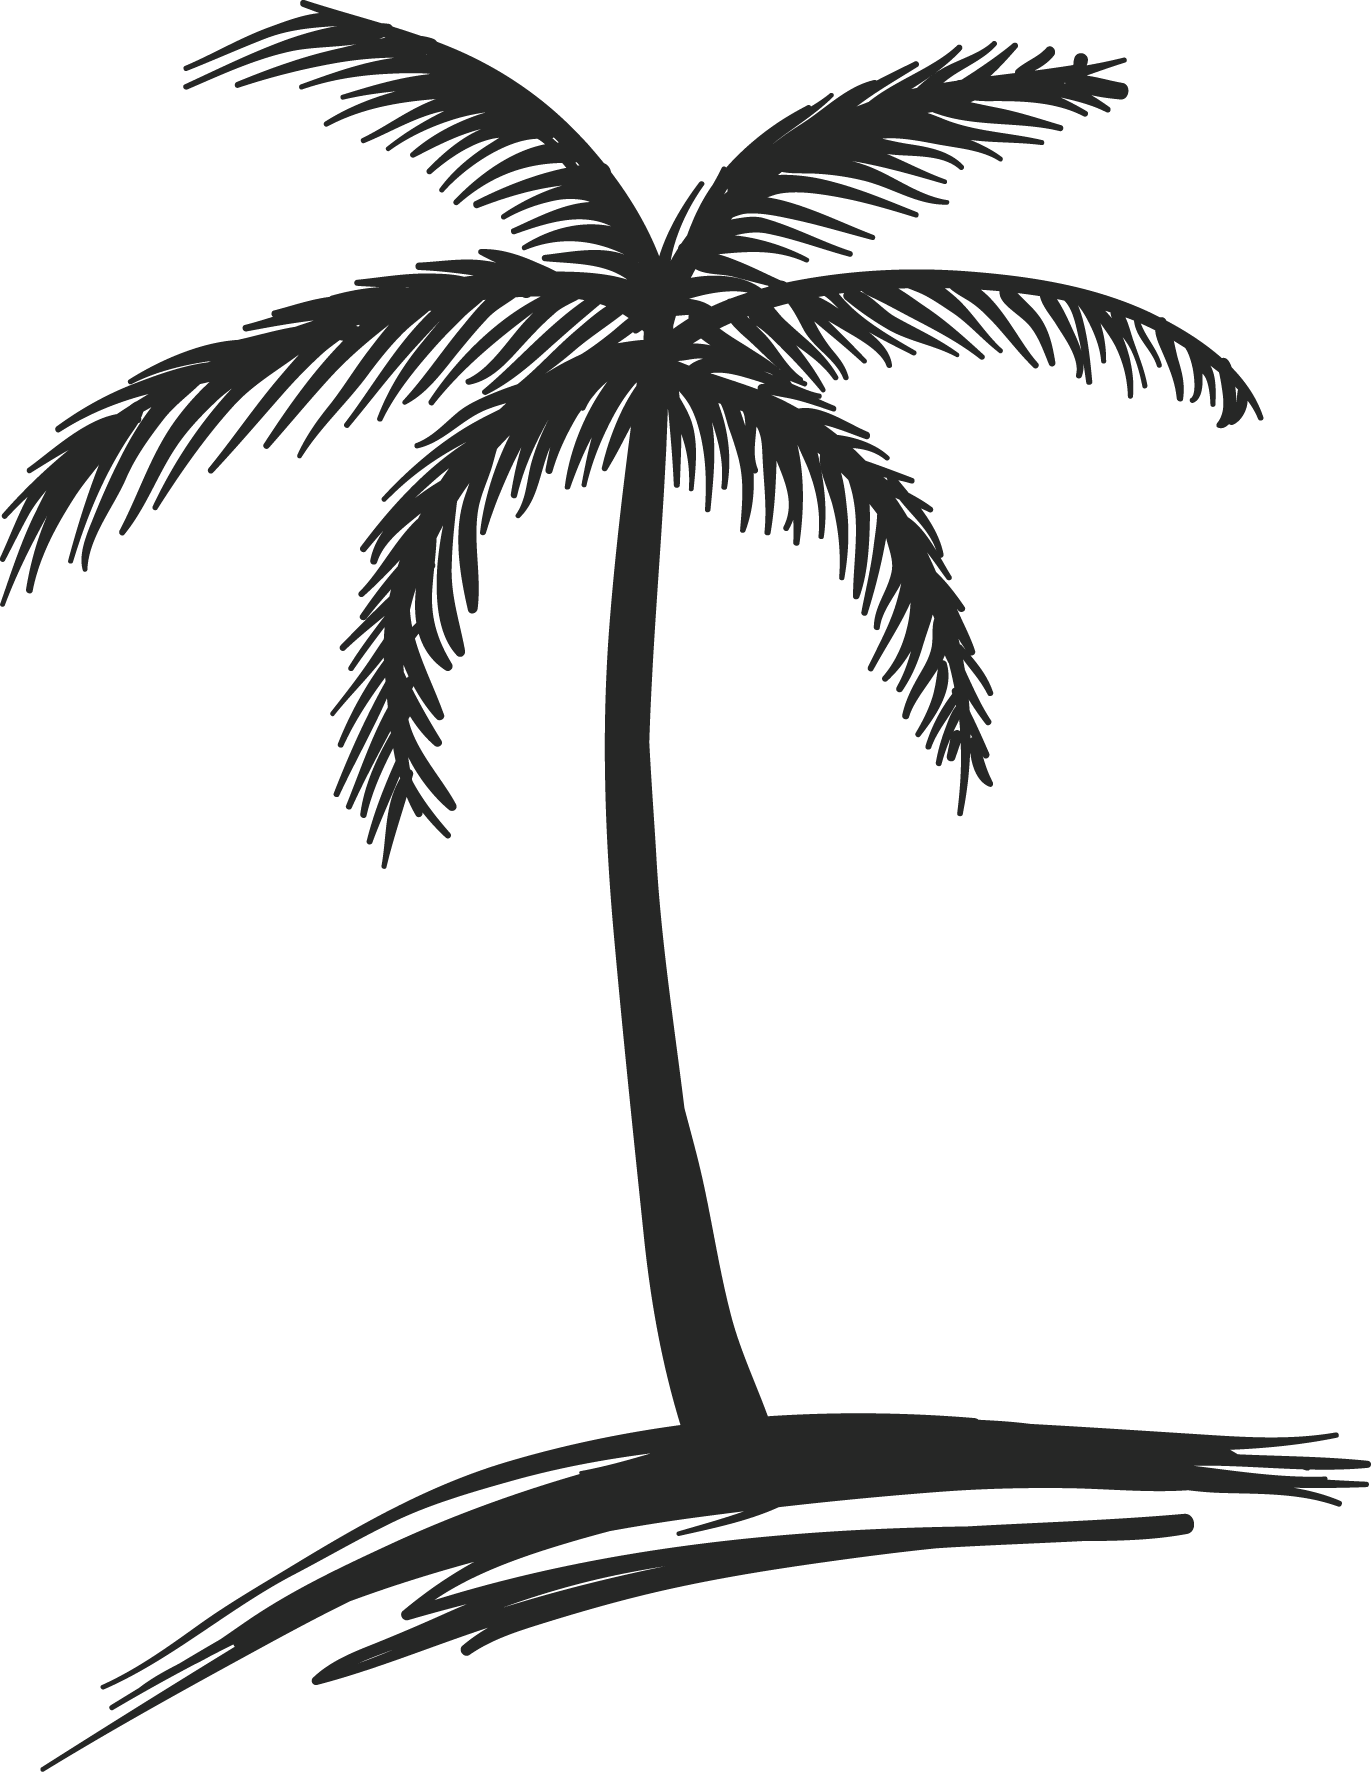 Palm Tree Drawing - Art Starts for Kids